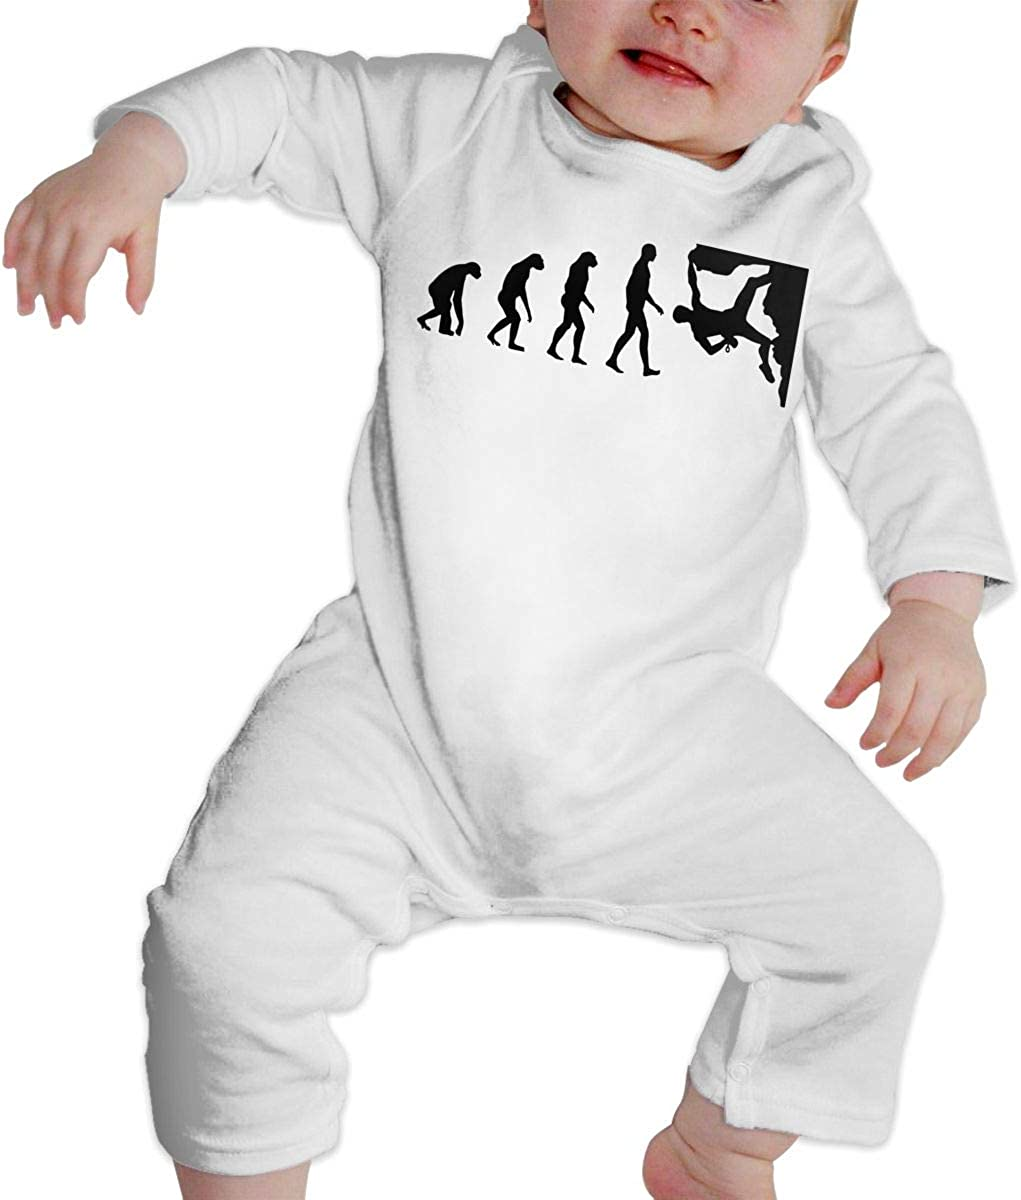 Music Note Heart Toddler Baby Girl Boy Romper Jumpsuit Outfit Long Sleeve Bodysuit Tops Clothes